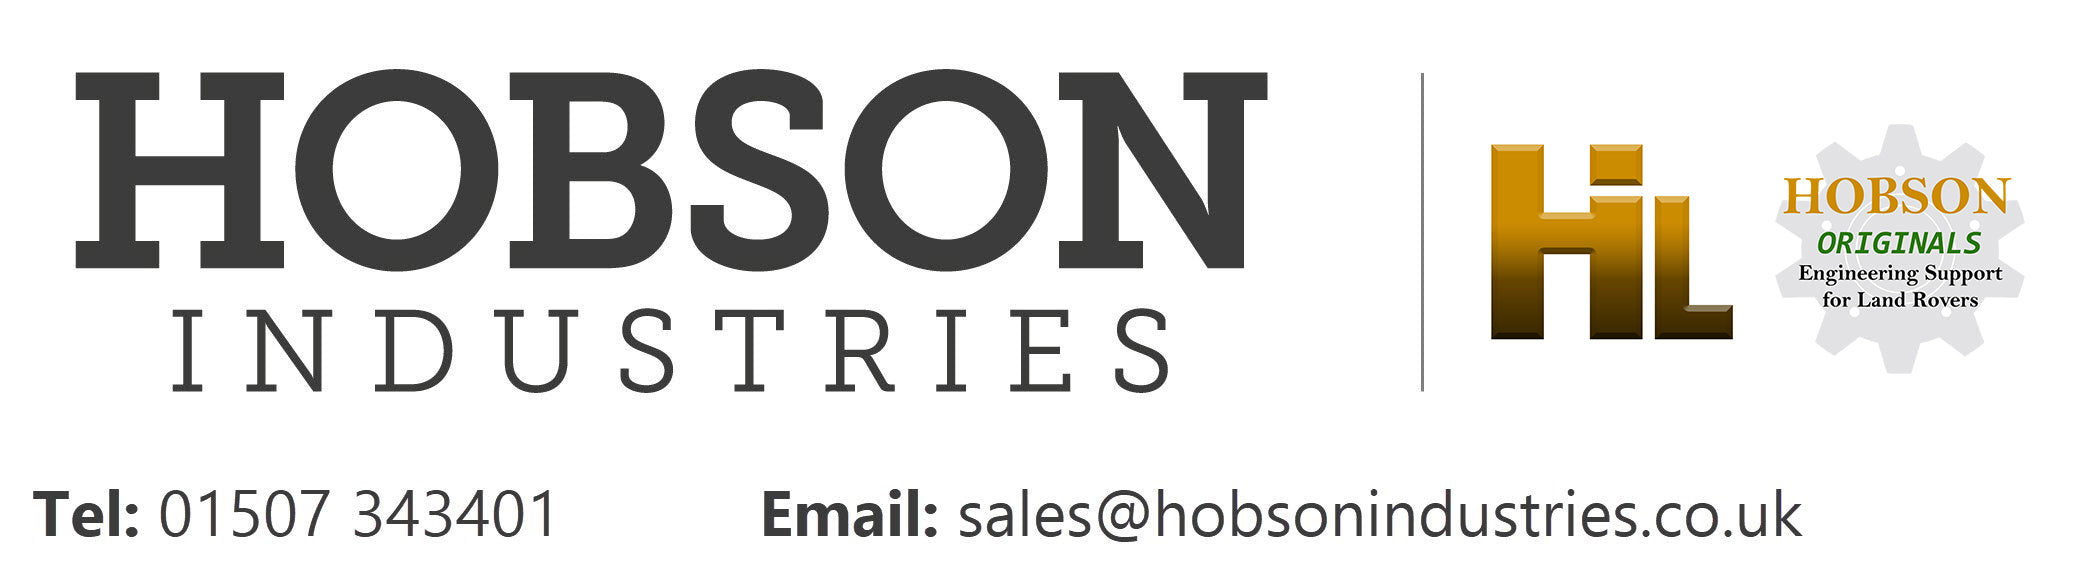 Hobson Industries Ltd